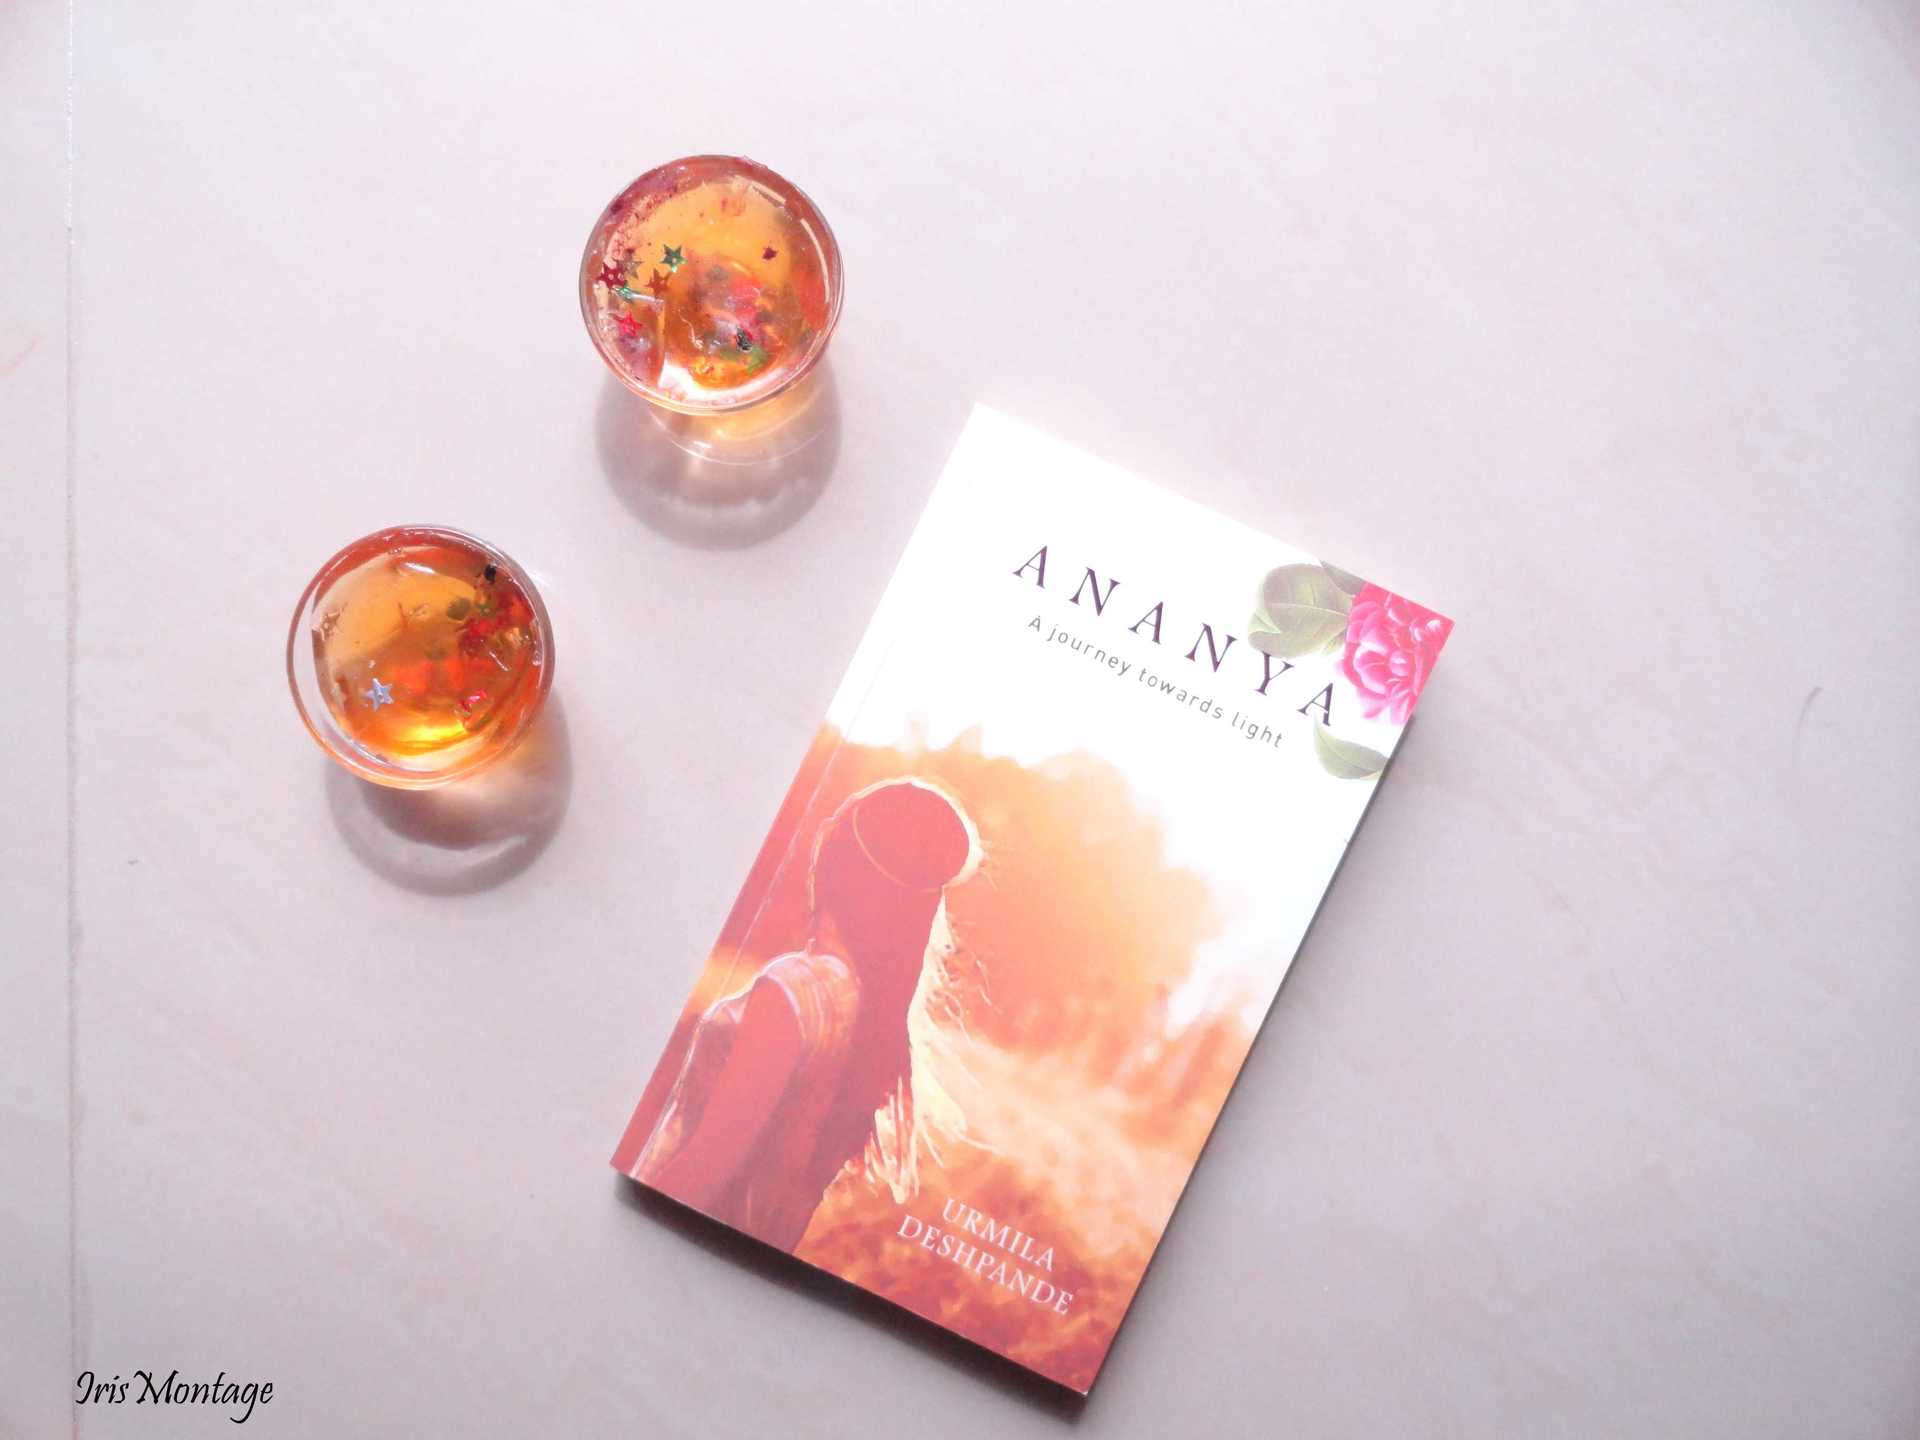 Ananya-  A journey towards light image